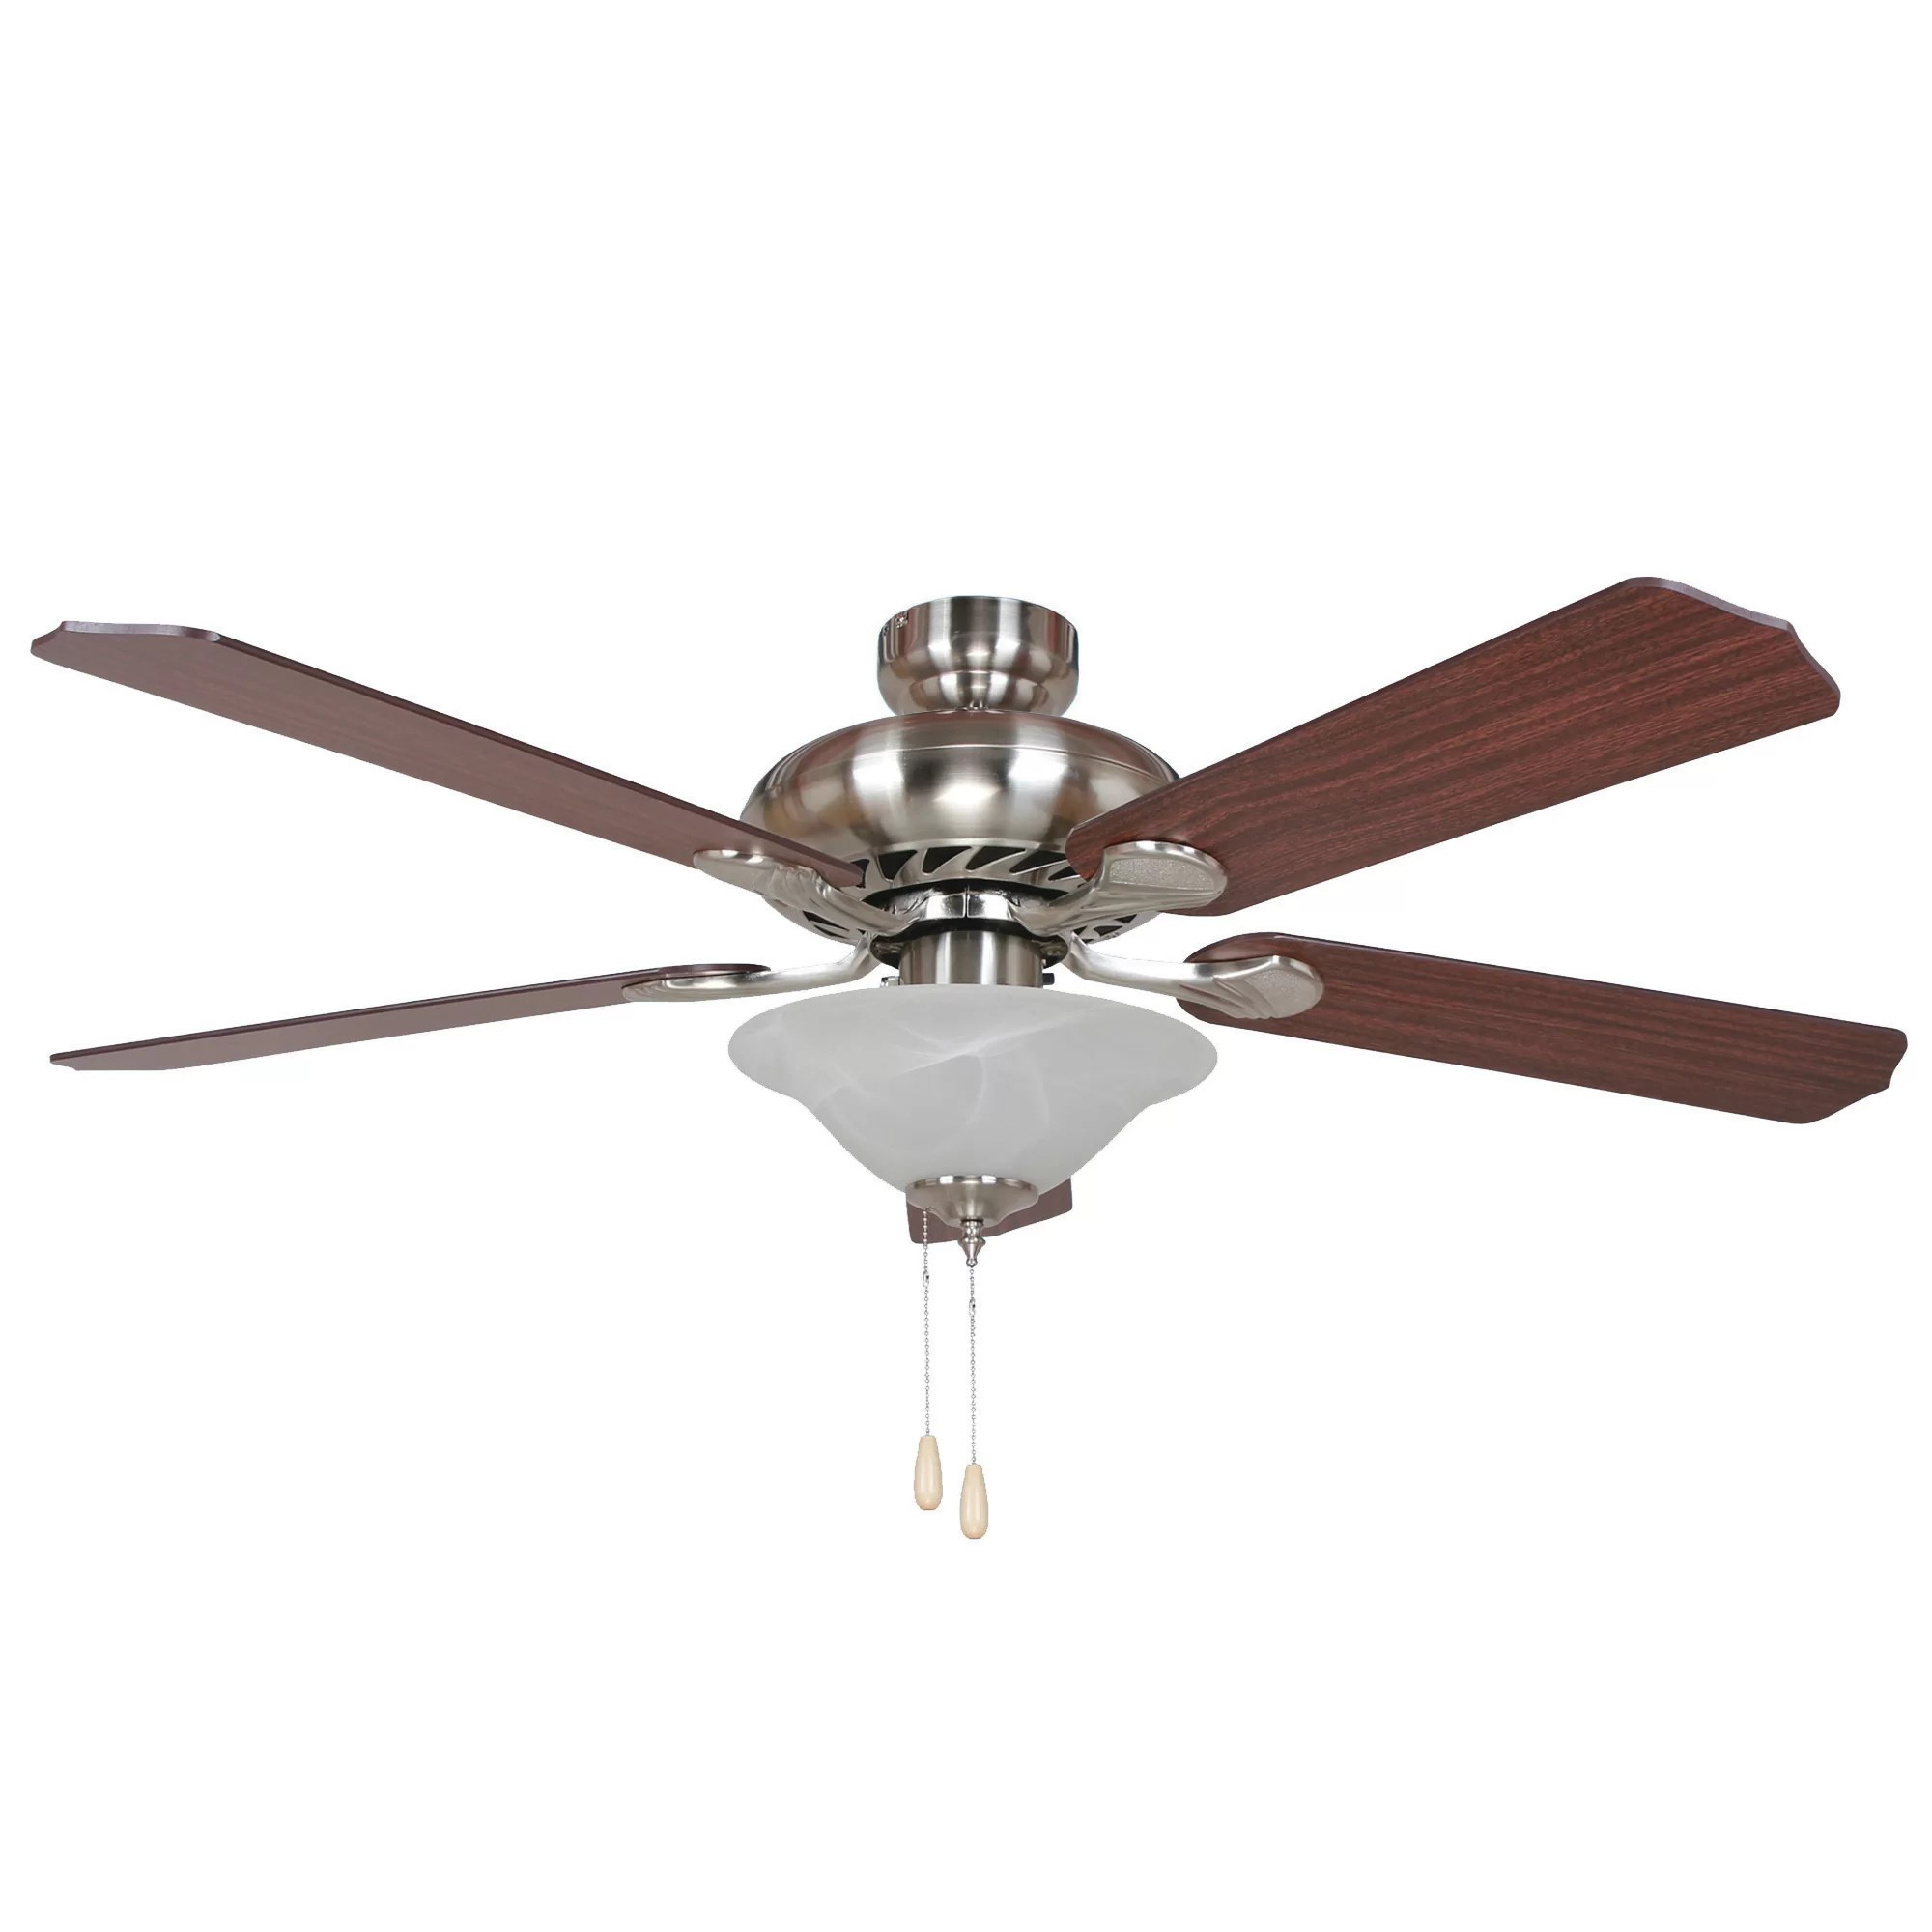 Home Decorations Ceiling Fans Yosemite Home Decor 52 Quot Whitney 5 Blade Ceiling Fan